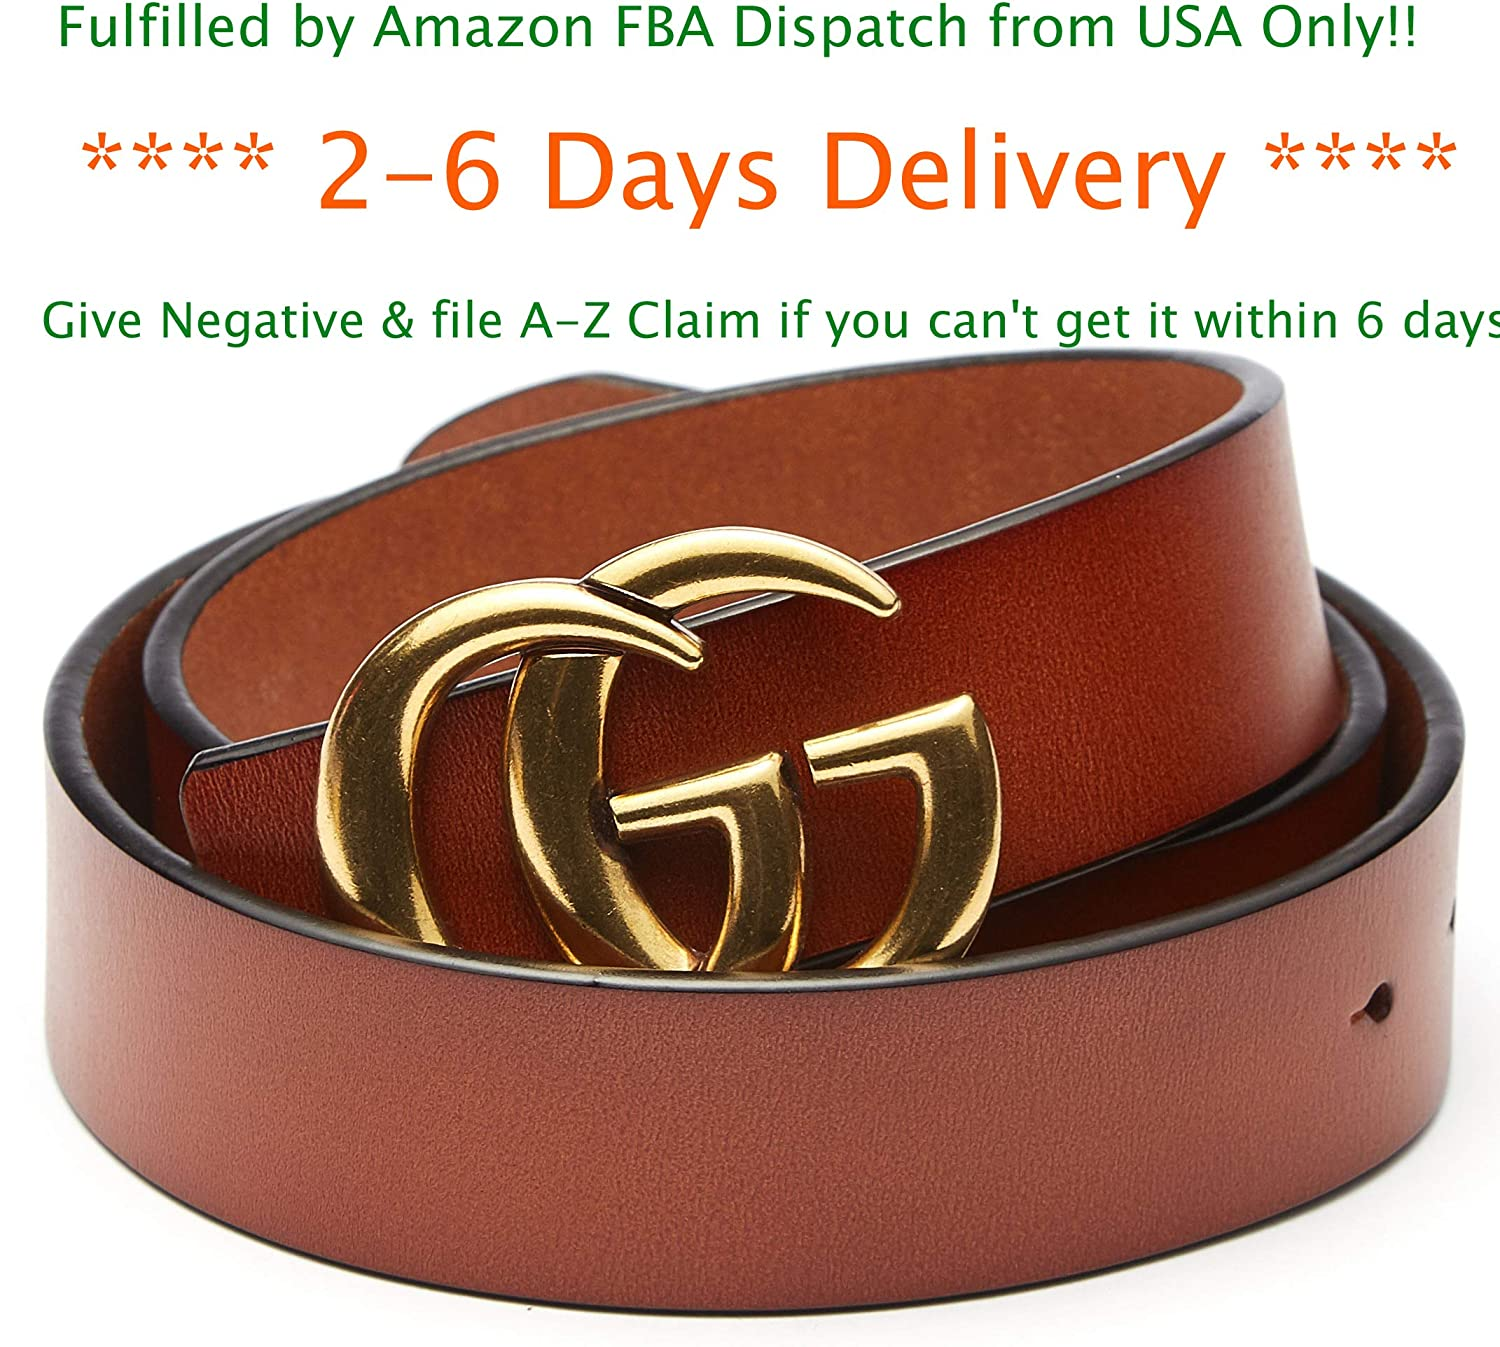 US FBA Fast Deliver 2-7 Days Guarantee - Fashion Style Gold Buckle Leather Belt for Women Lady [3.8cm Belt Width]